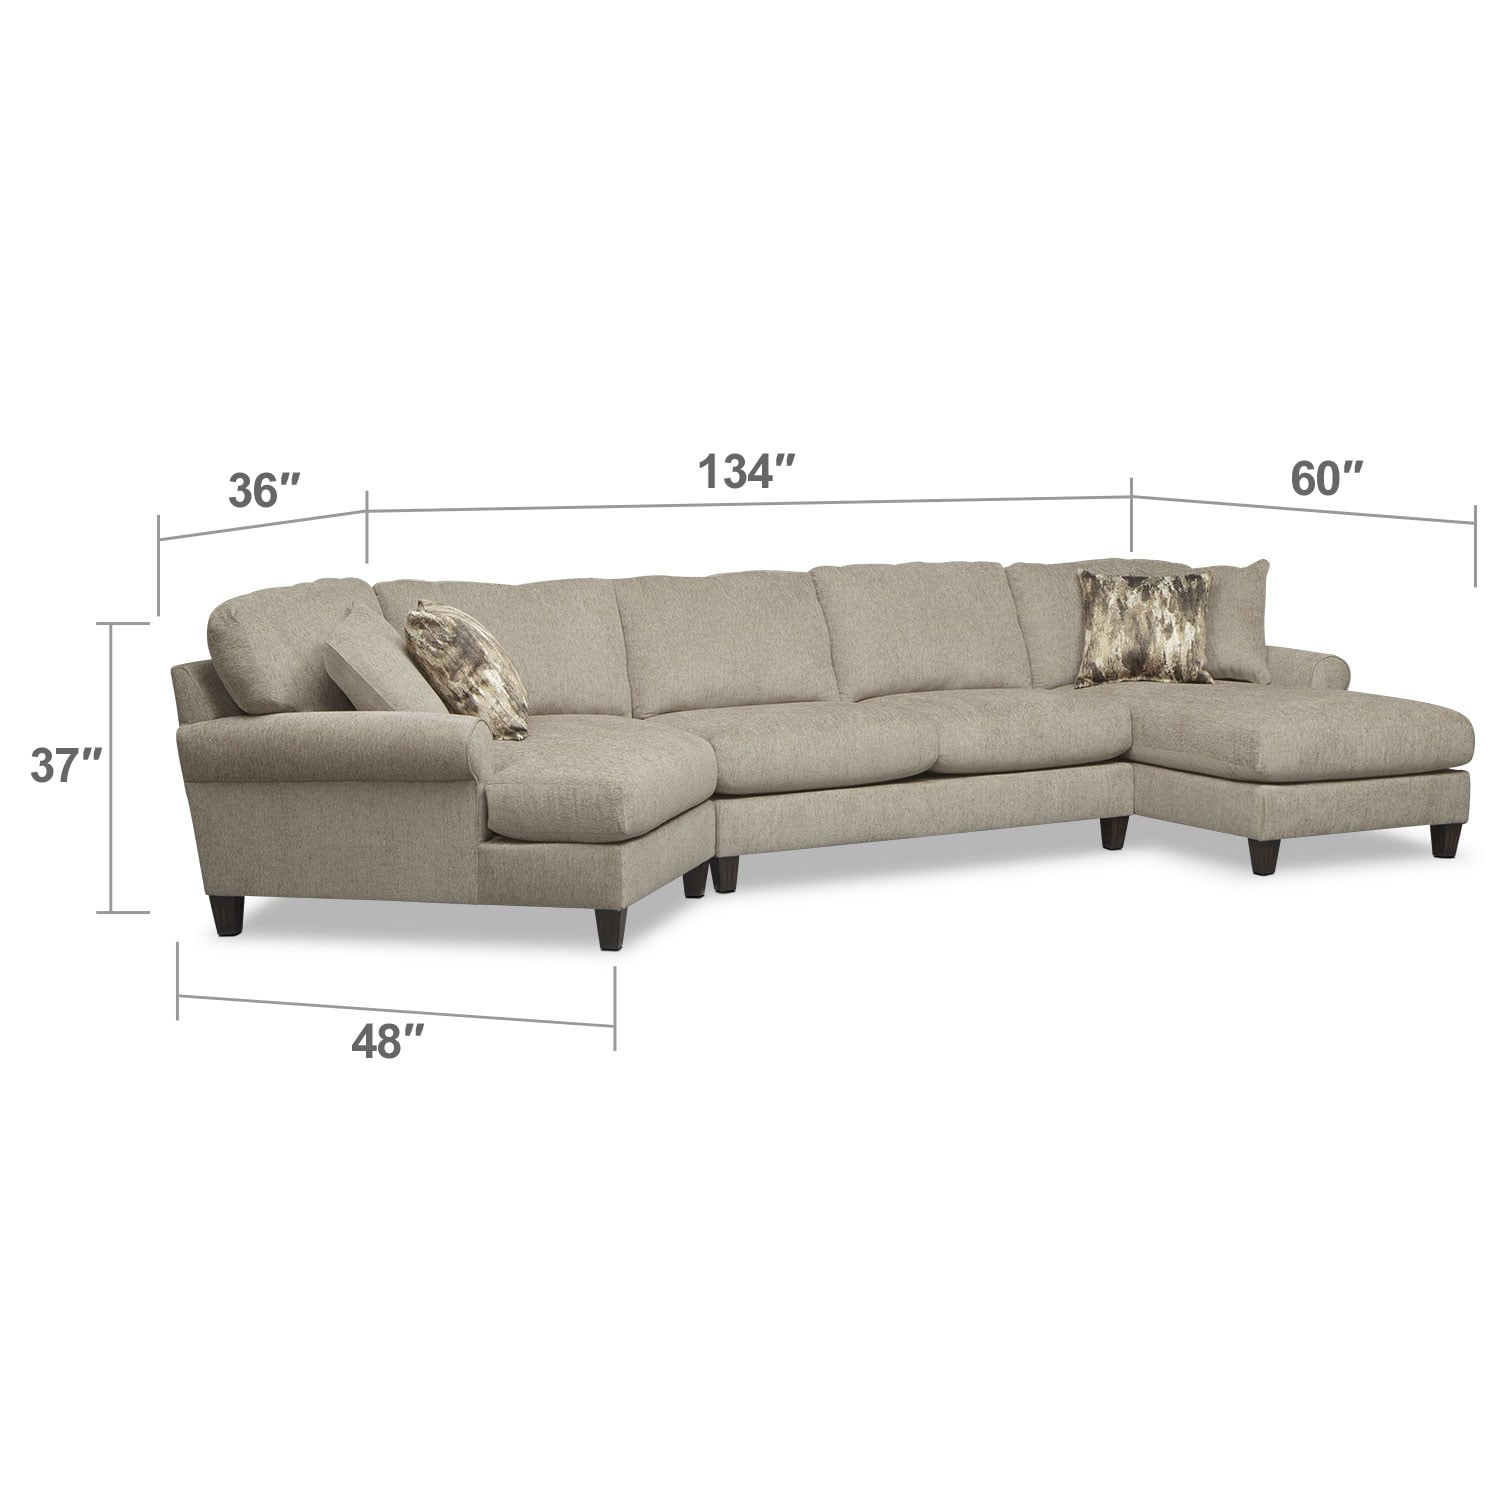 Living Room Furniture - Karma 3-Piece Sectional with Left-Facing Cuddler and Right-Facing Chaise - Mink